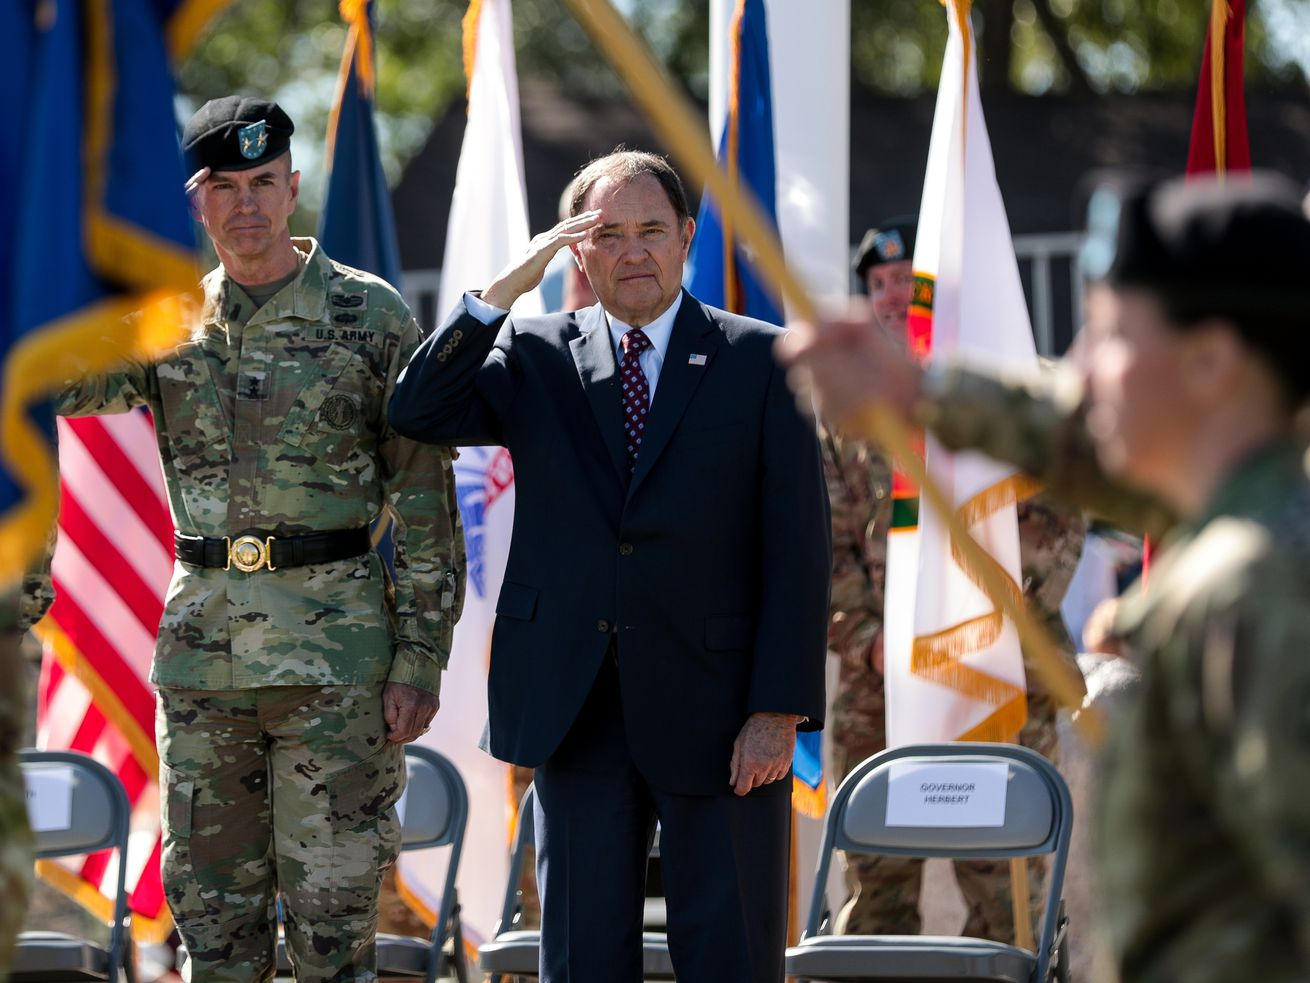 Photos: Utah governor salutes the troops